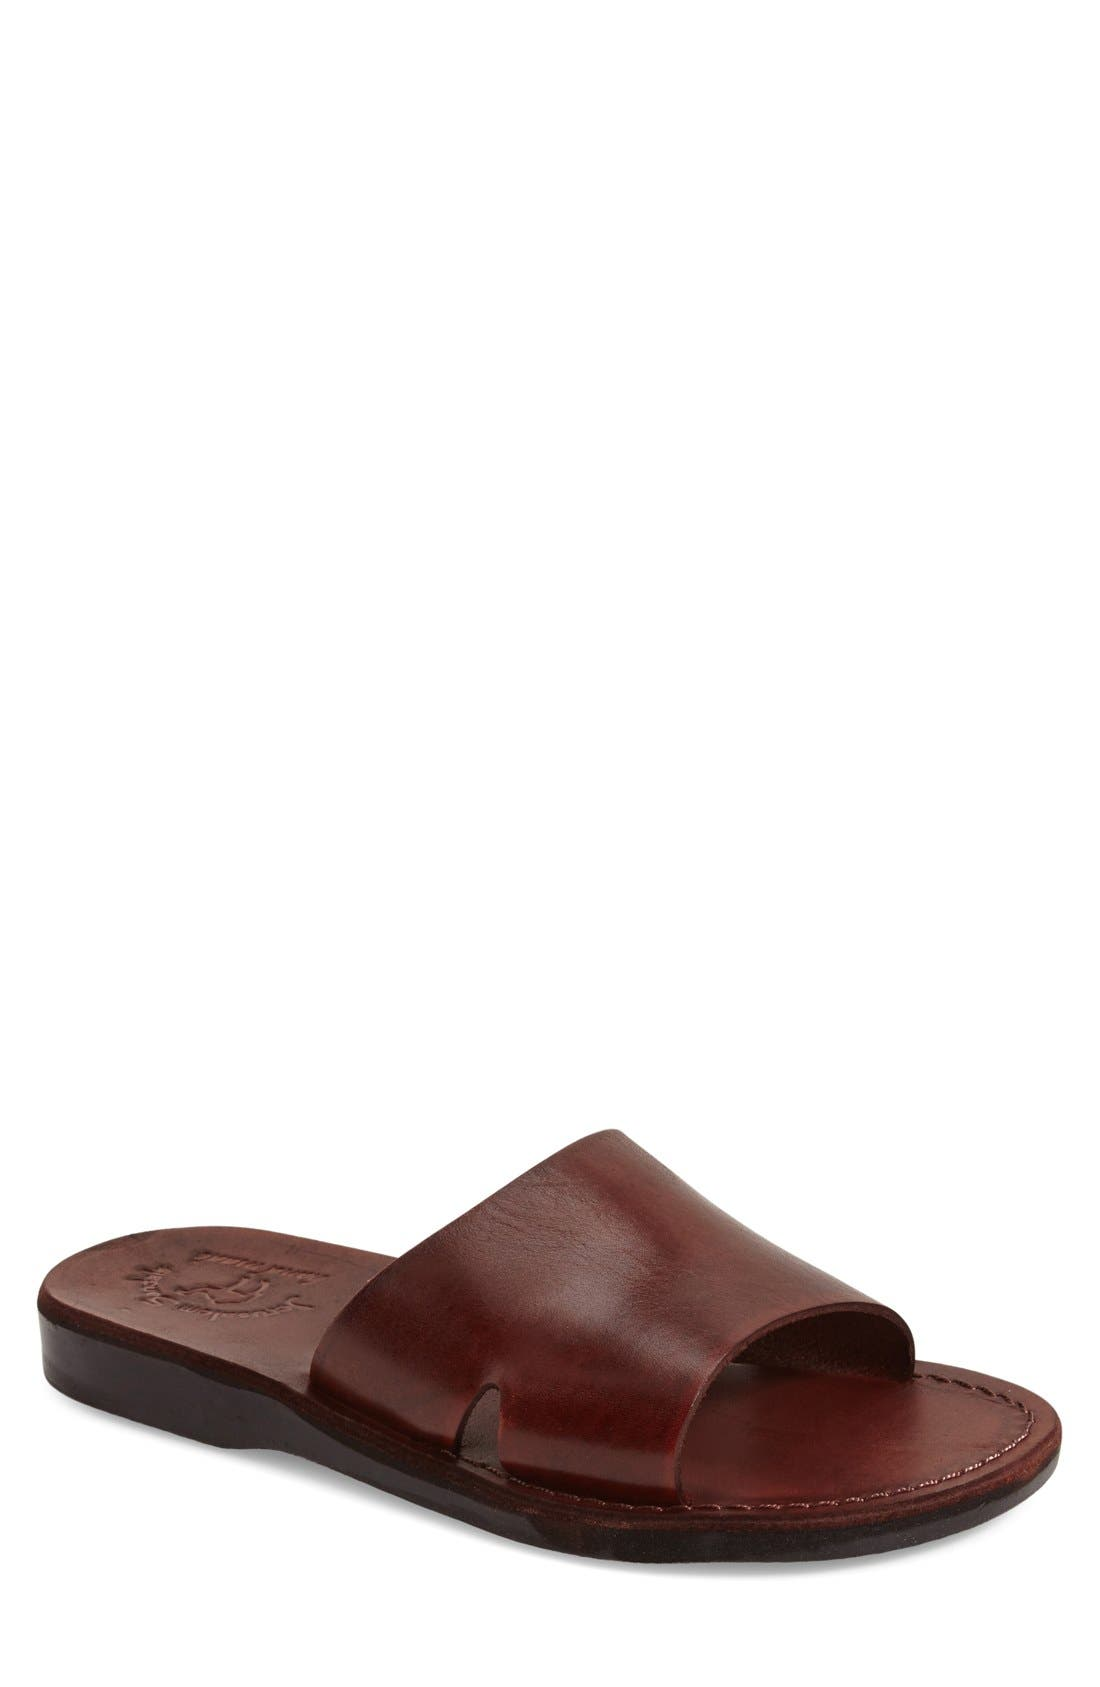 'Bashan' Sandal,                         Main,                         color, Brown Leather